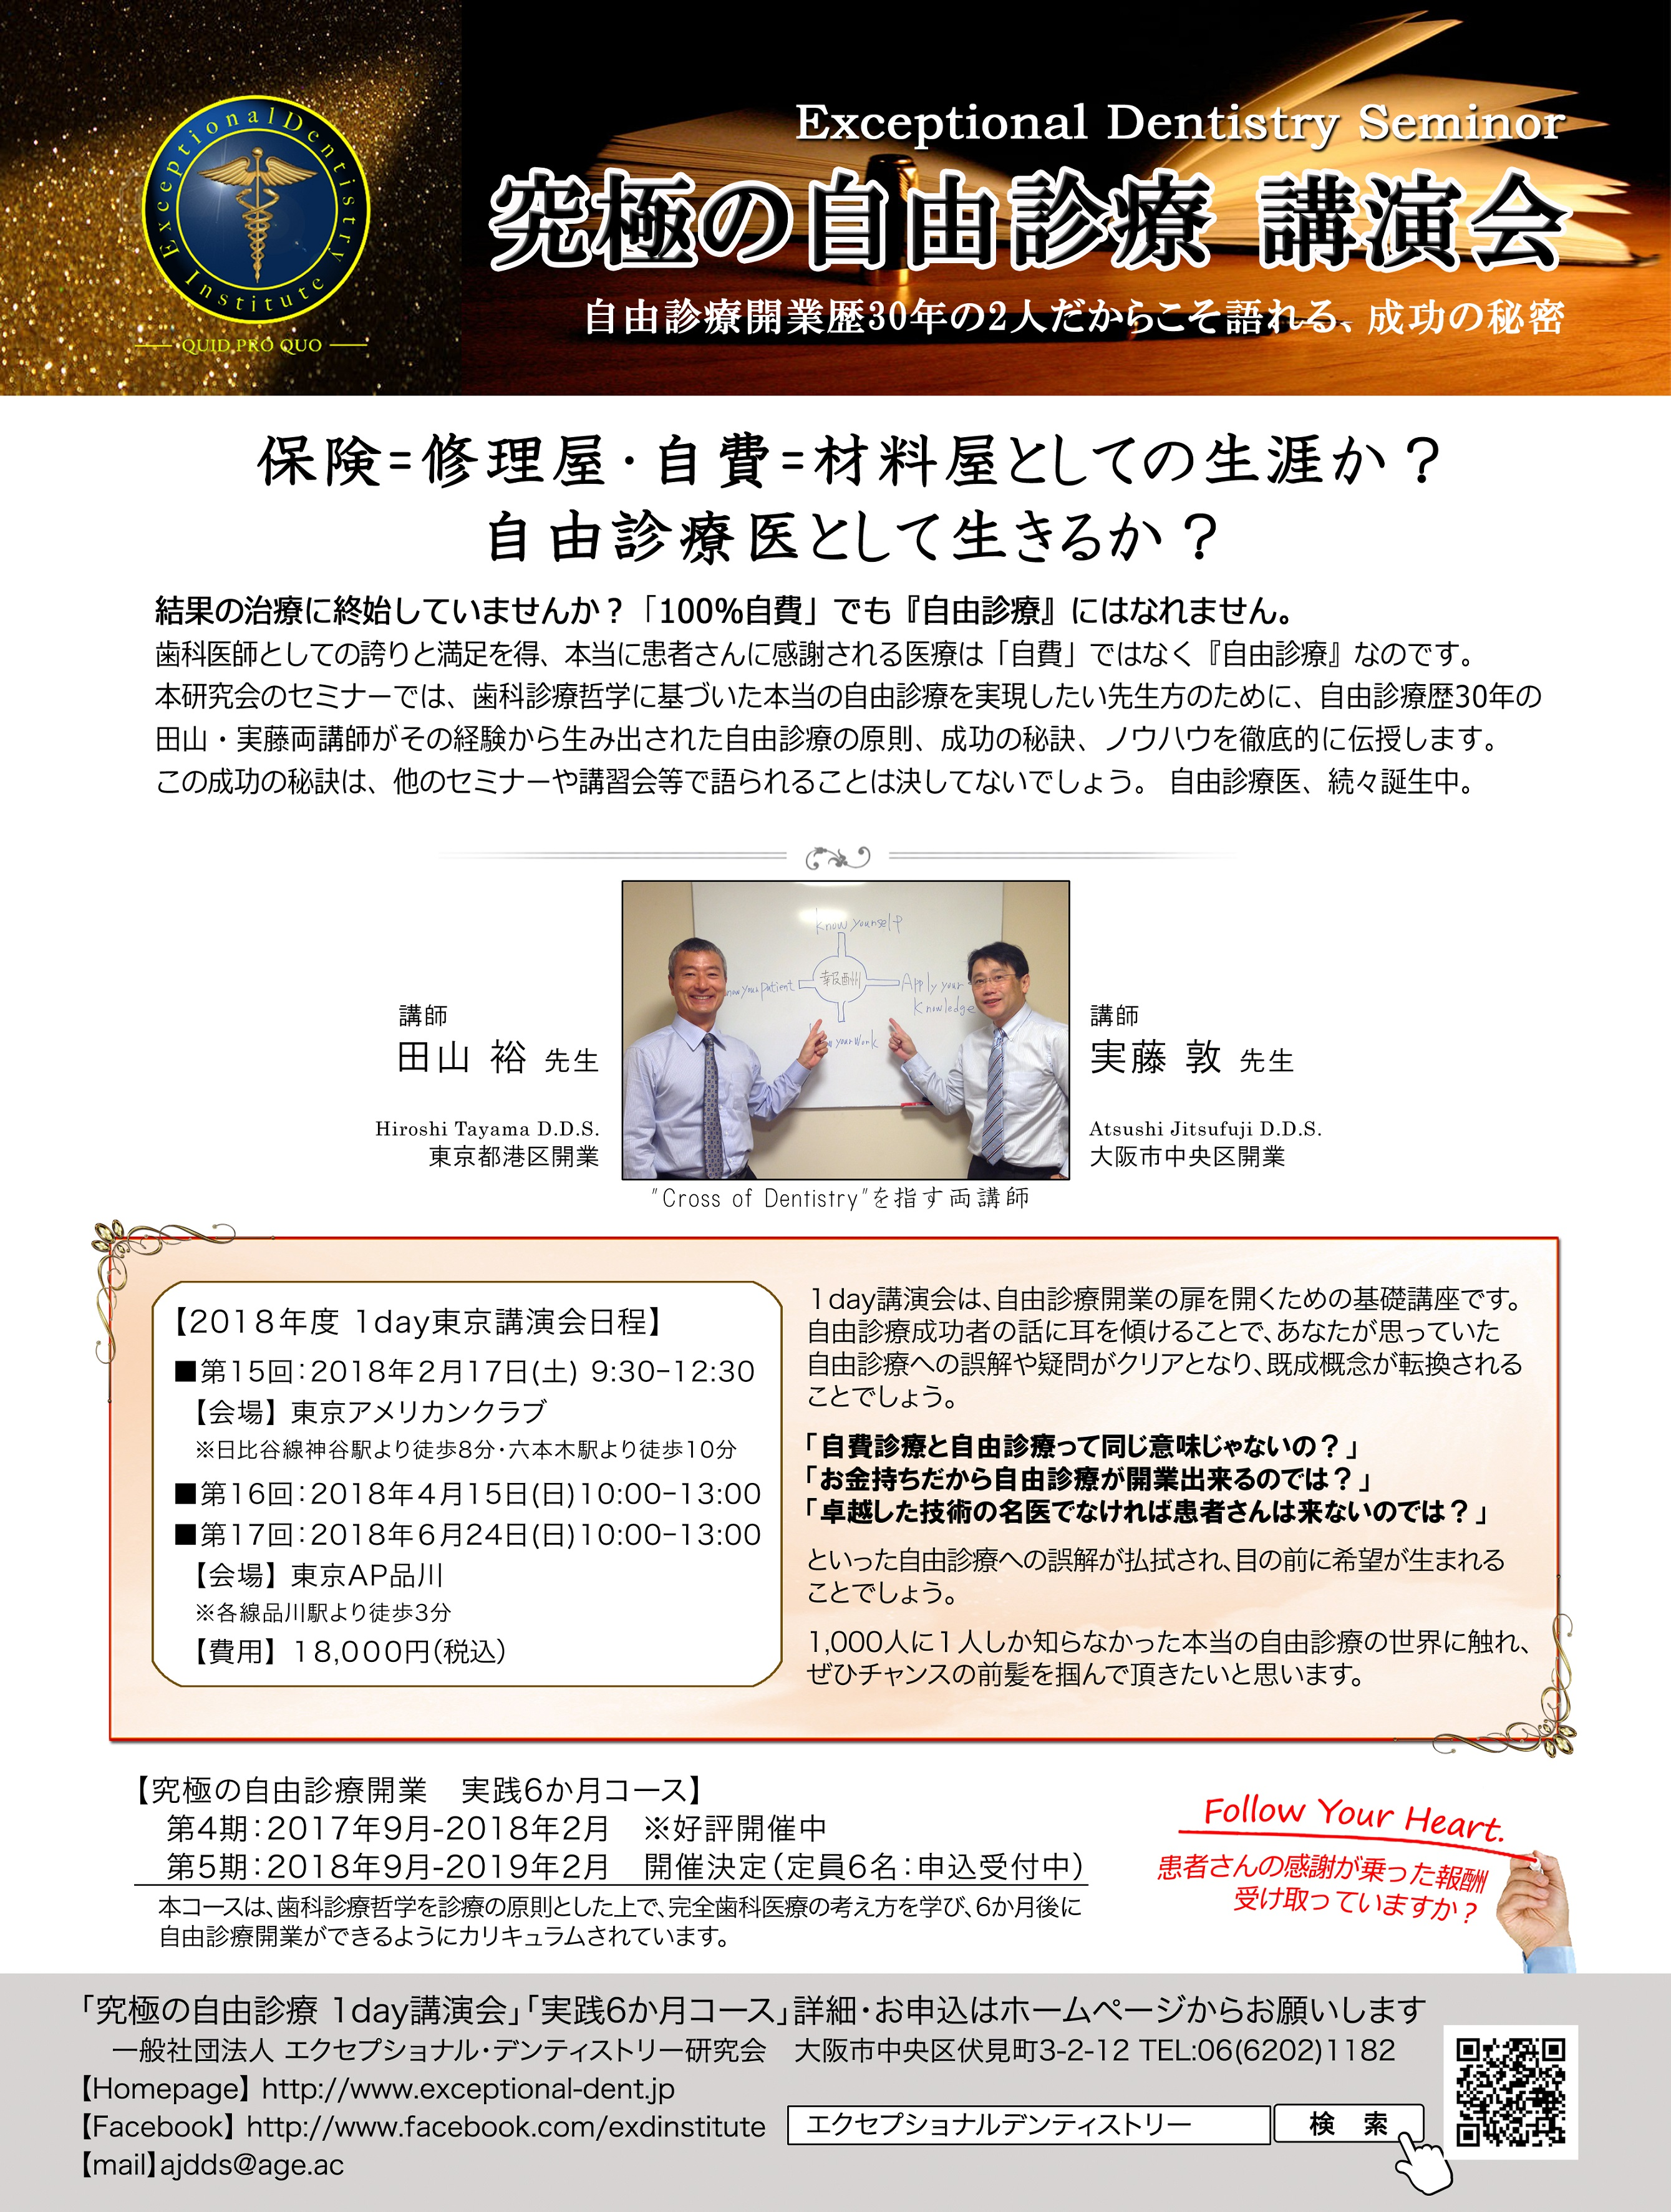 1Day講演会 Exceptional Dentistry Seminor ~究極の自由診療 講演会~